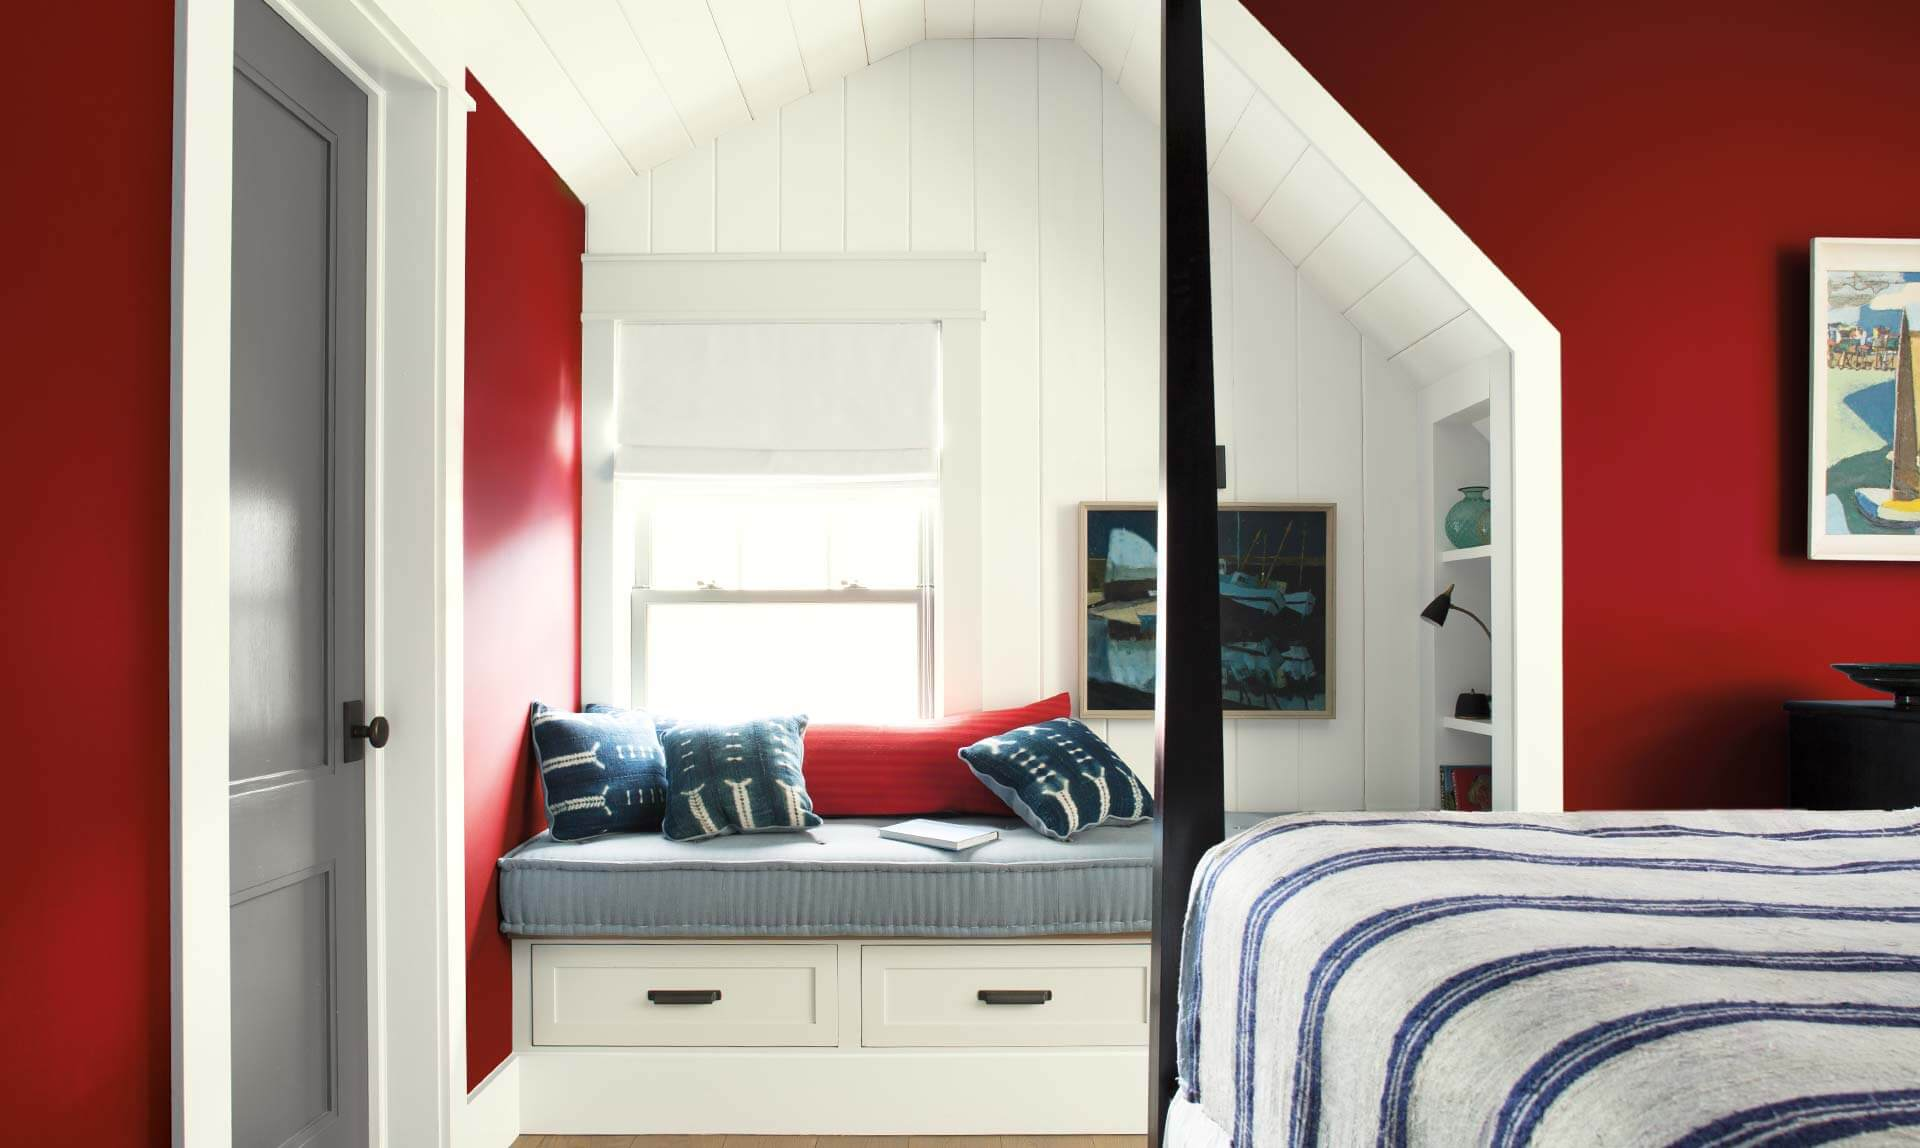 The power of red revs up warm weathered woods and misty ocean grass and greens of a serene seaside retreat